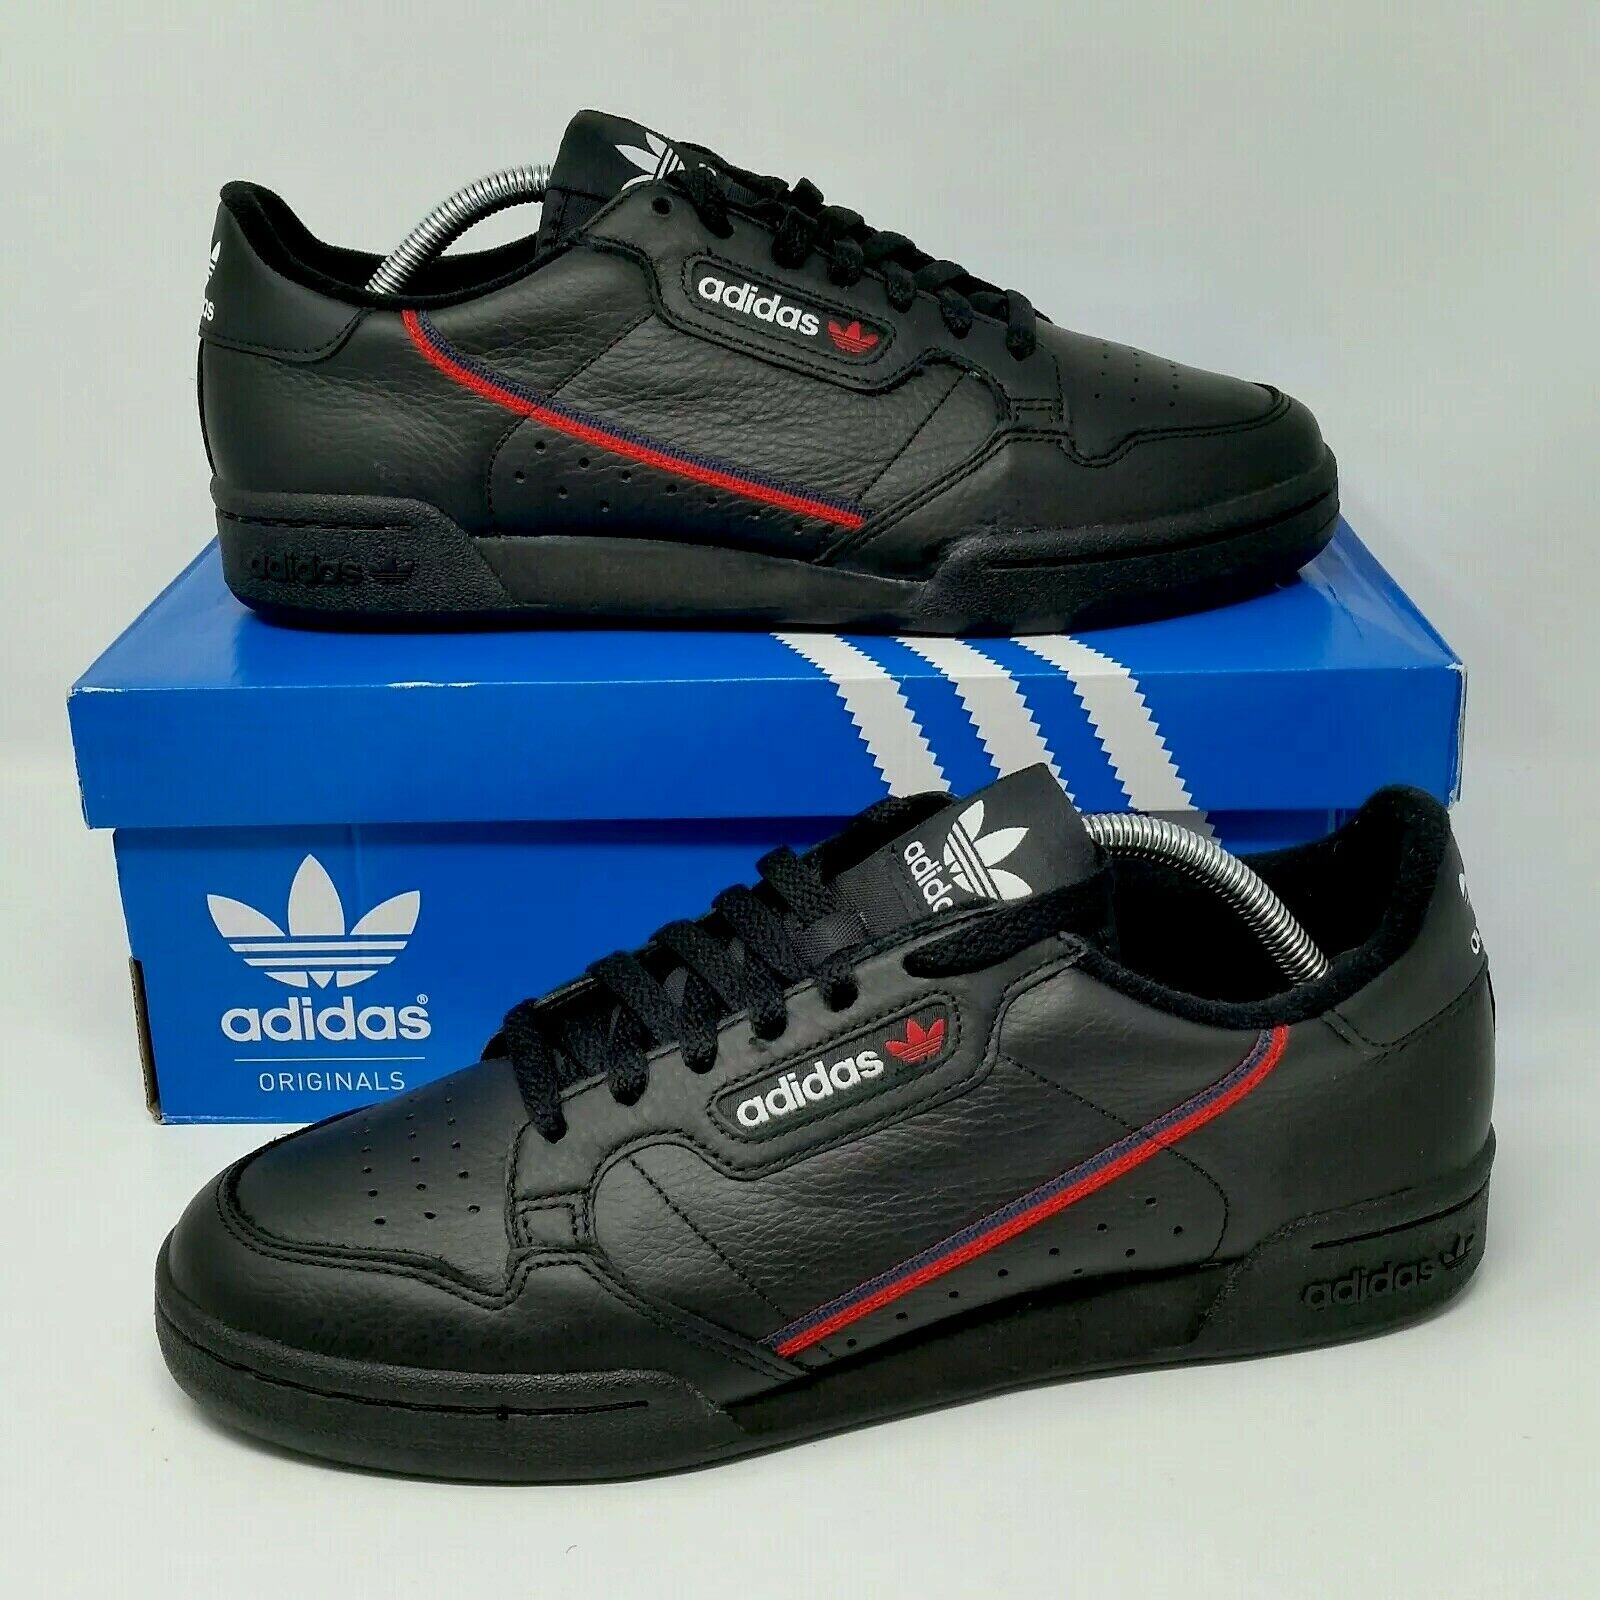 NEW Adidas Originals Continental 80 (Men's Size 9.5) Leather Sneakers Black